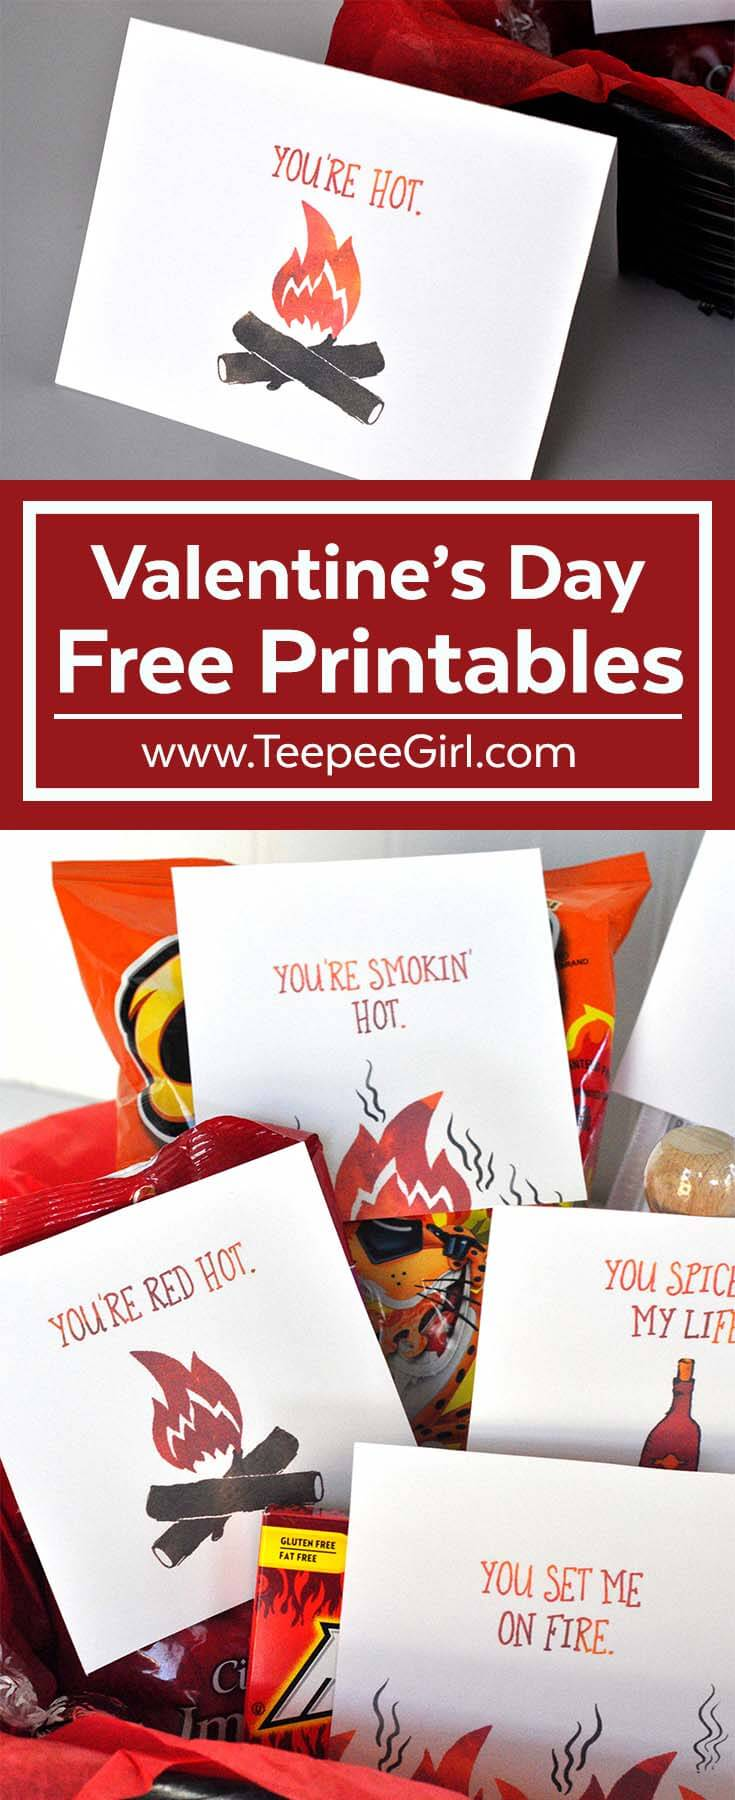 Valentine's Day Gift Printables - Teepee Girl